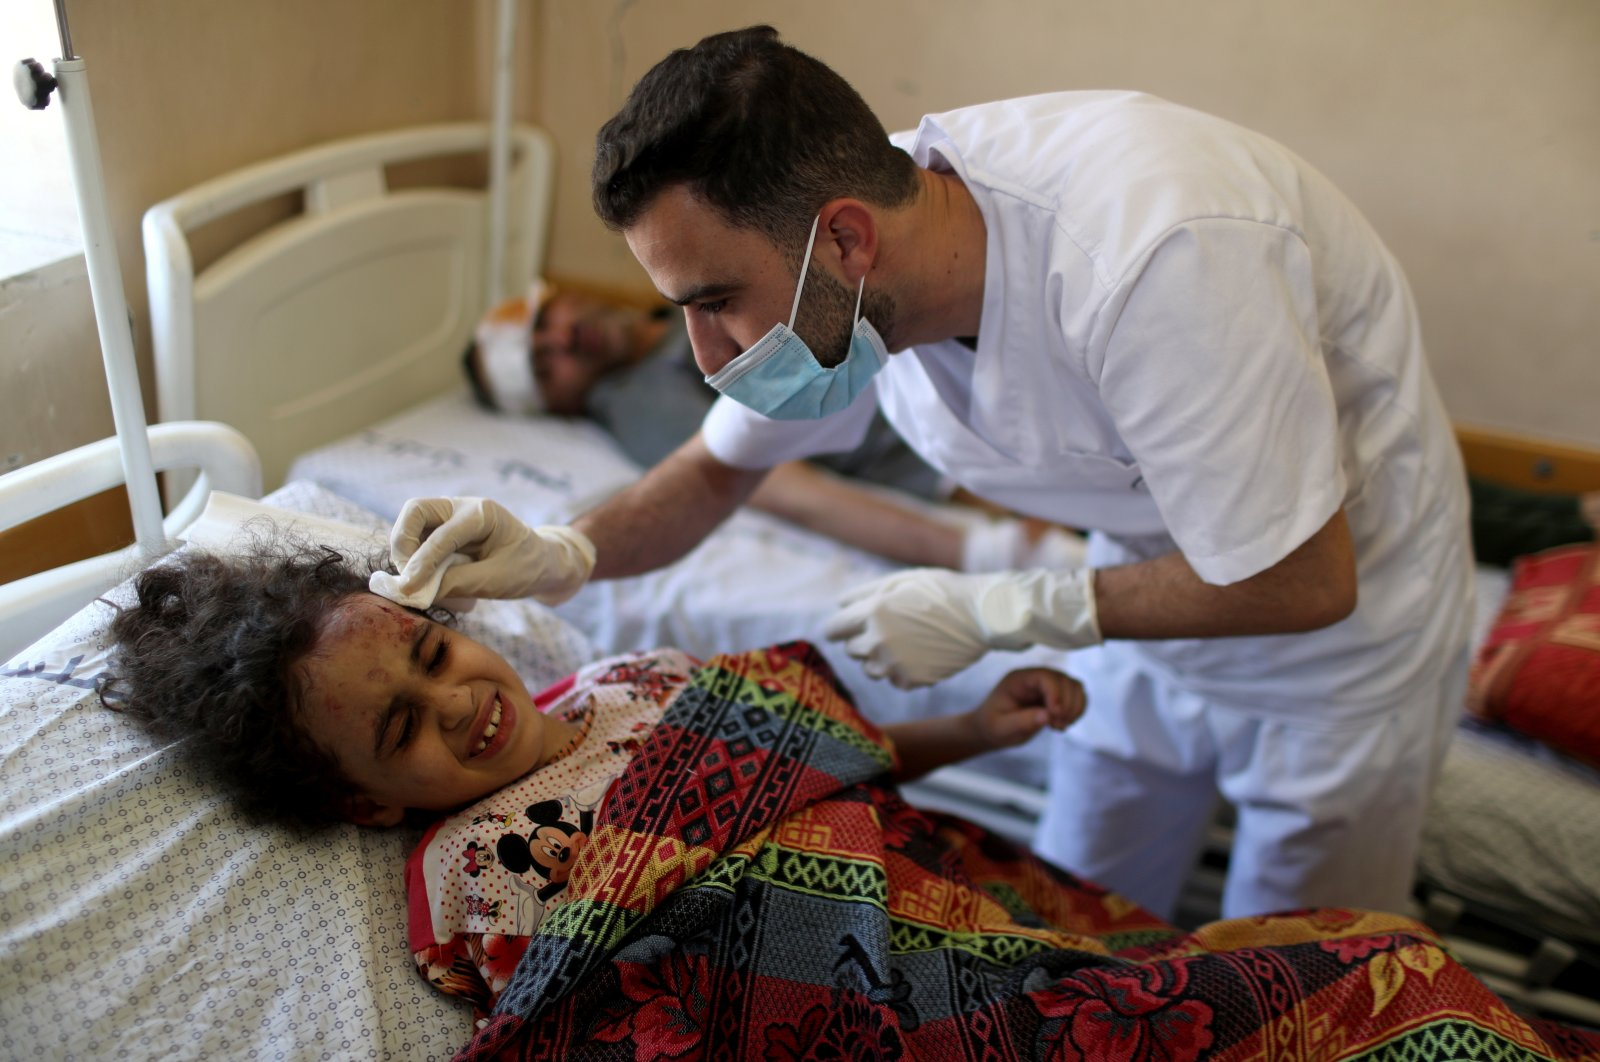 Palestinian girl Suzy Eshkuntana, 6, is treated by a medic at a hospital after being pulled from the rubble of a building amidst Israeli airstrikes, in Gaza City on May 16, 2021. (Reuters Photo)